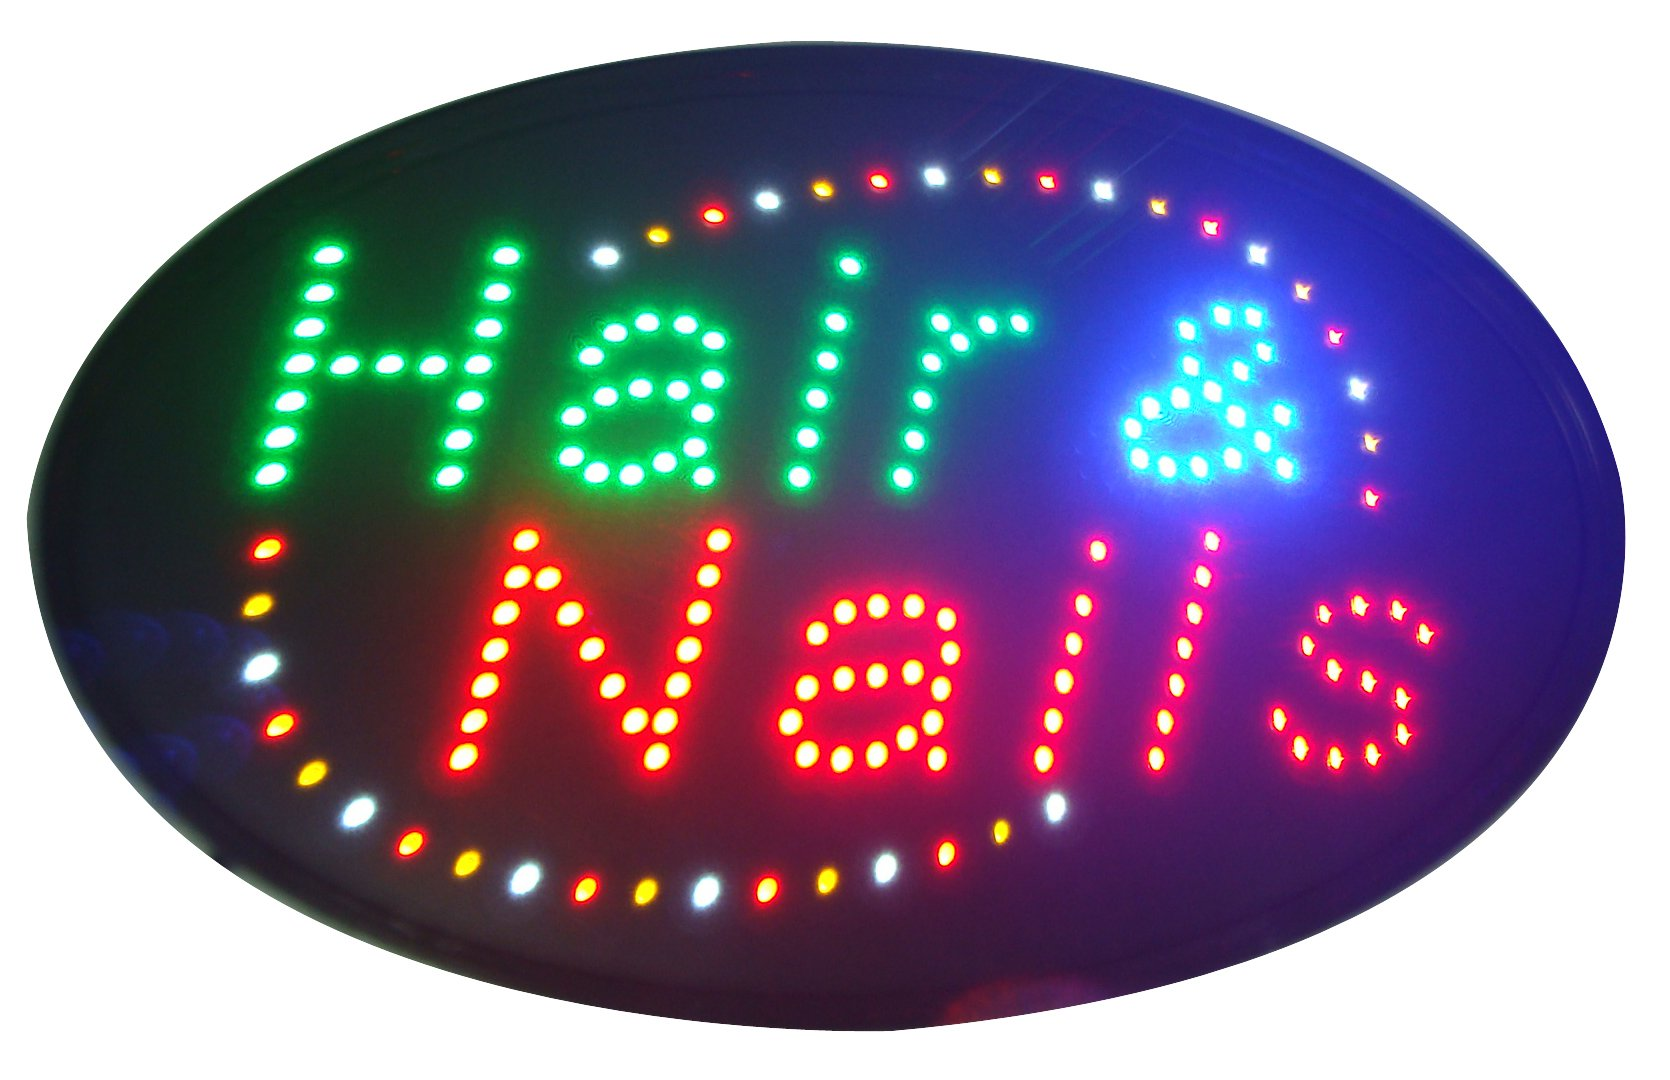 CHENXI Oval Nails&Spa Hair&Nails Beauty Business Store Neon Signs 48X25 CM Indoor Ultra Bright Flashing Led Beauty Display Sign (48 X 25 CM, hair&nails) by CHENXI